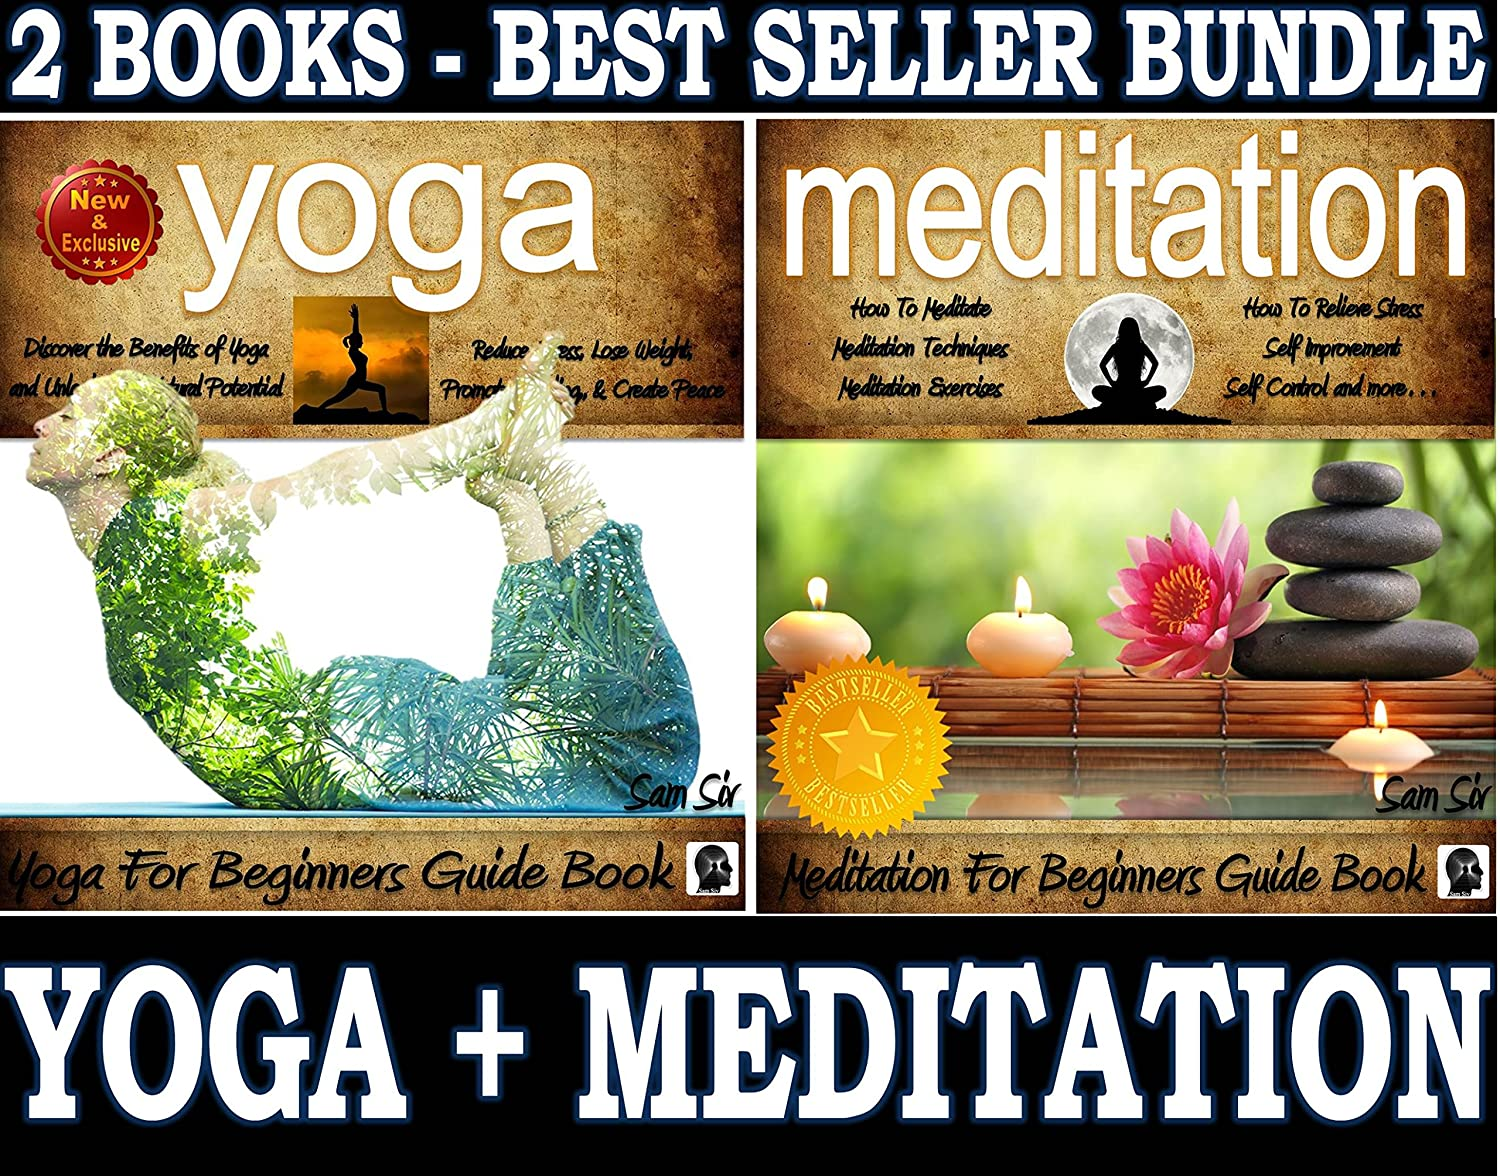 Yoga For Beginners and Meditation For Beginners Book Boxed ...